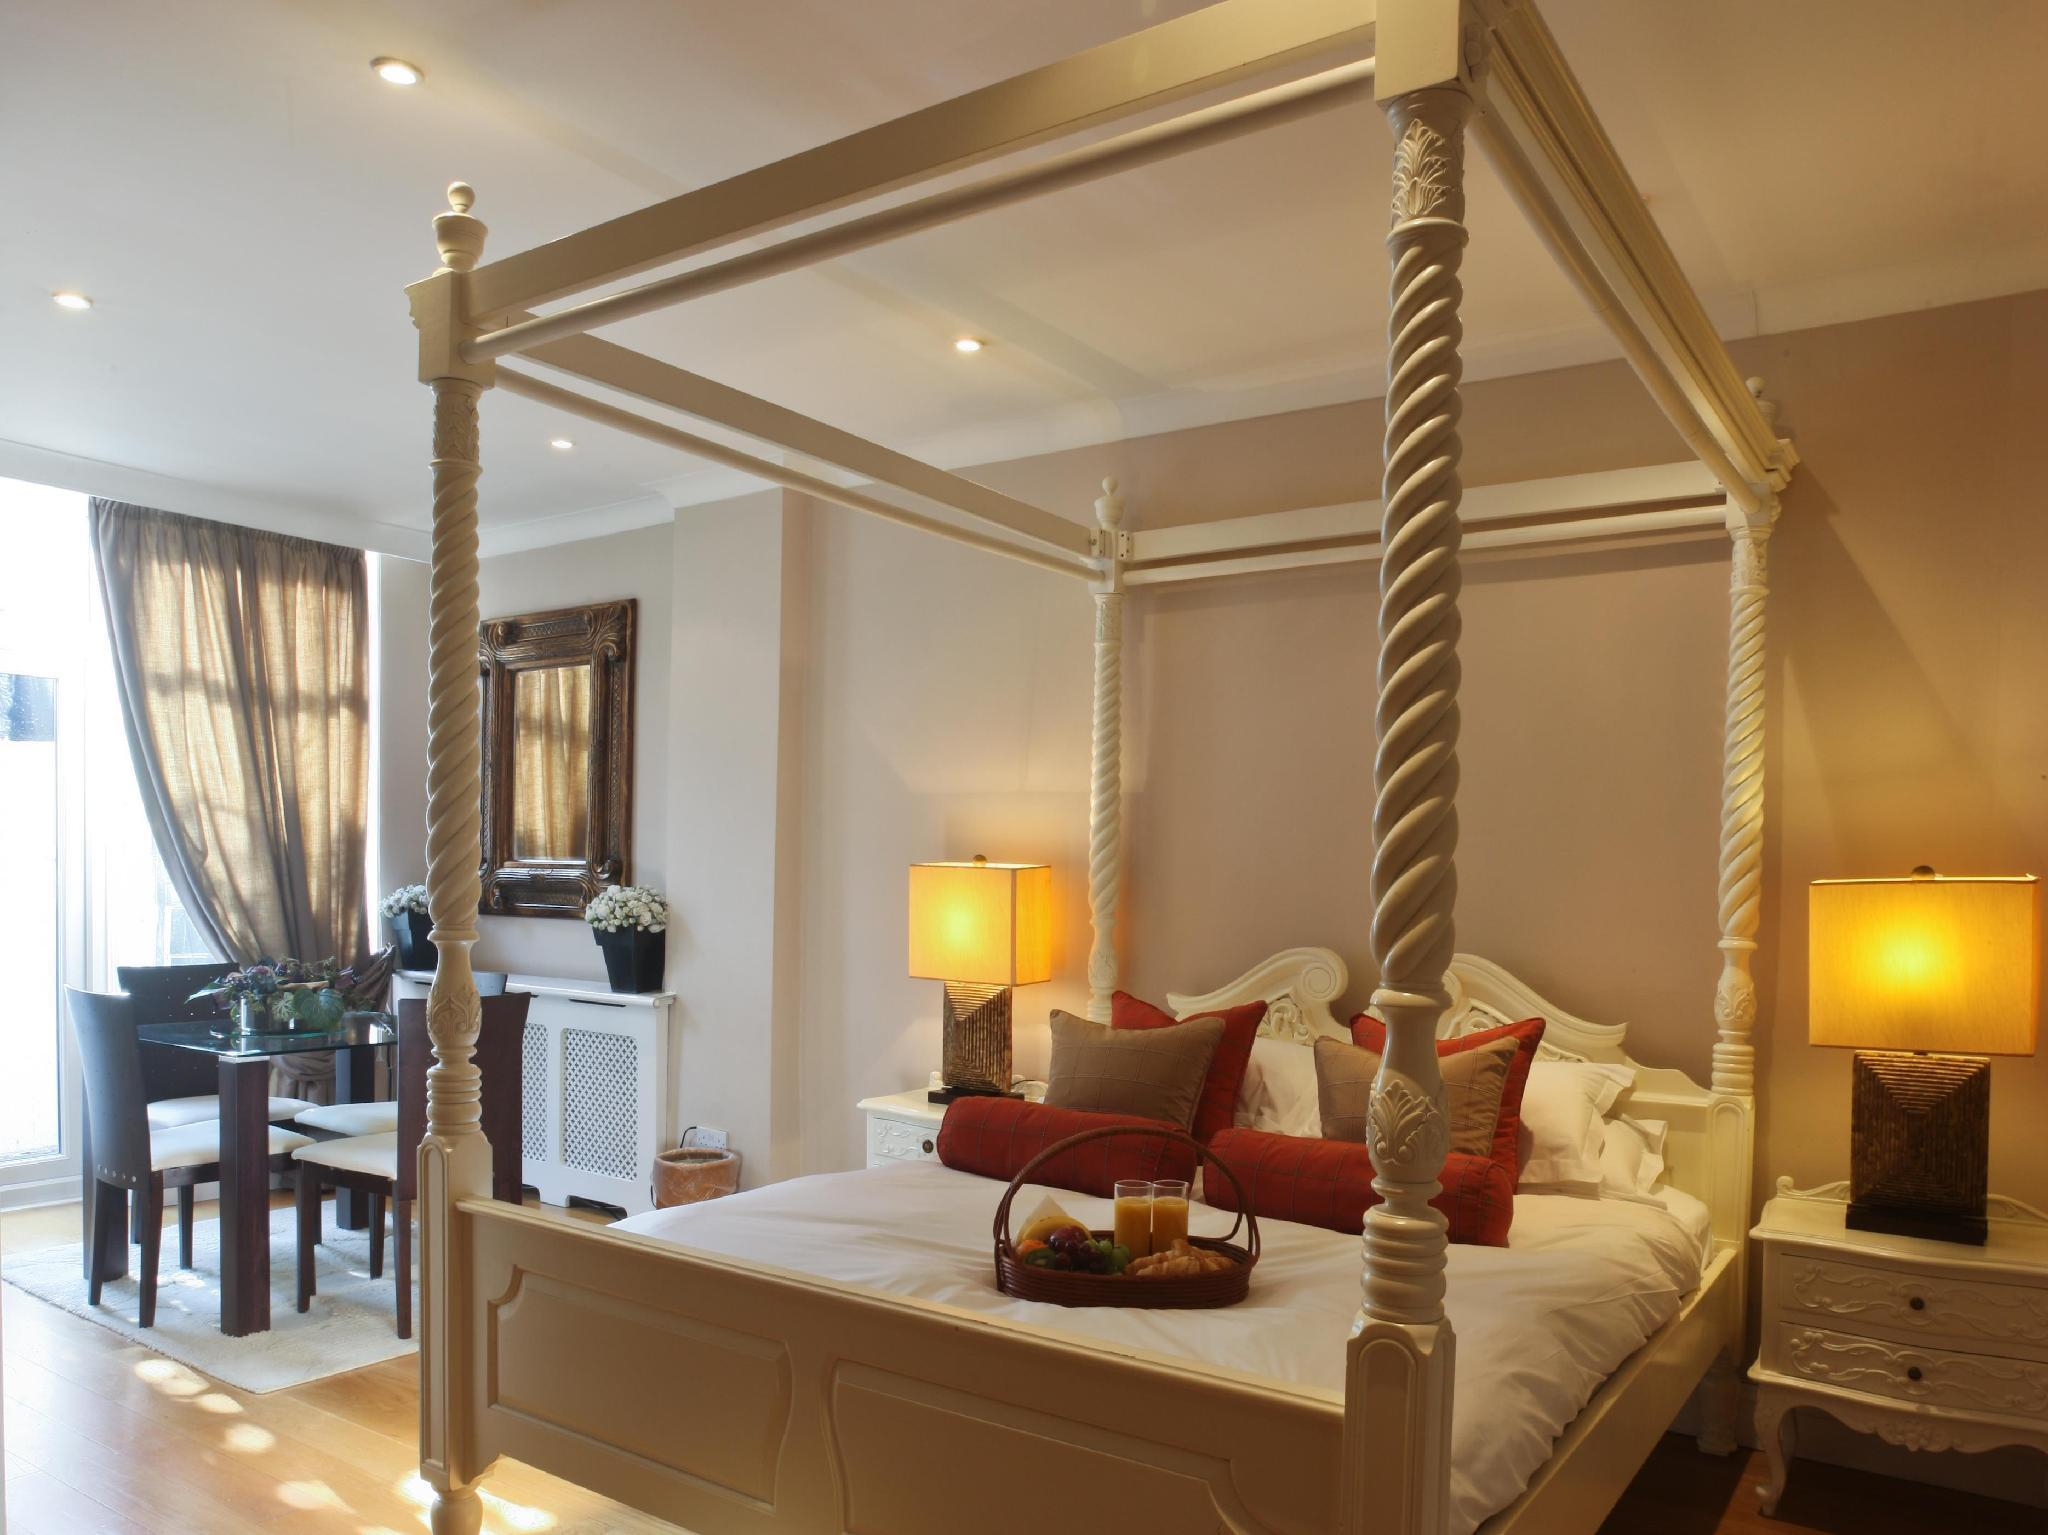 Four-poster Suite (sleeps 2)